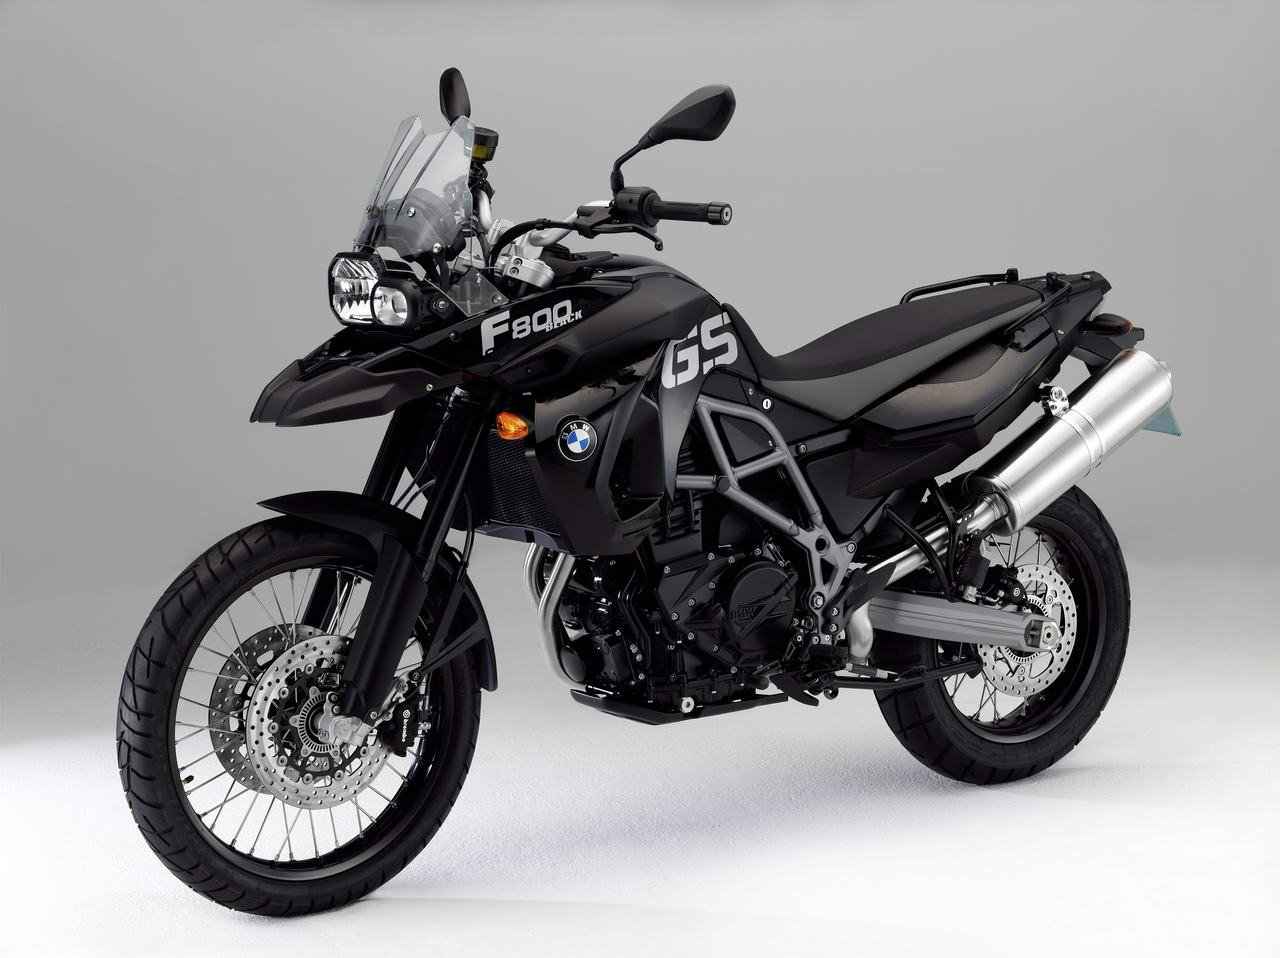 bmw f800 gs italy motorcycle rental scooters motorcycles vans cars for hire holidays. Black Bedroom Furniture Sets. Home Design Ideas